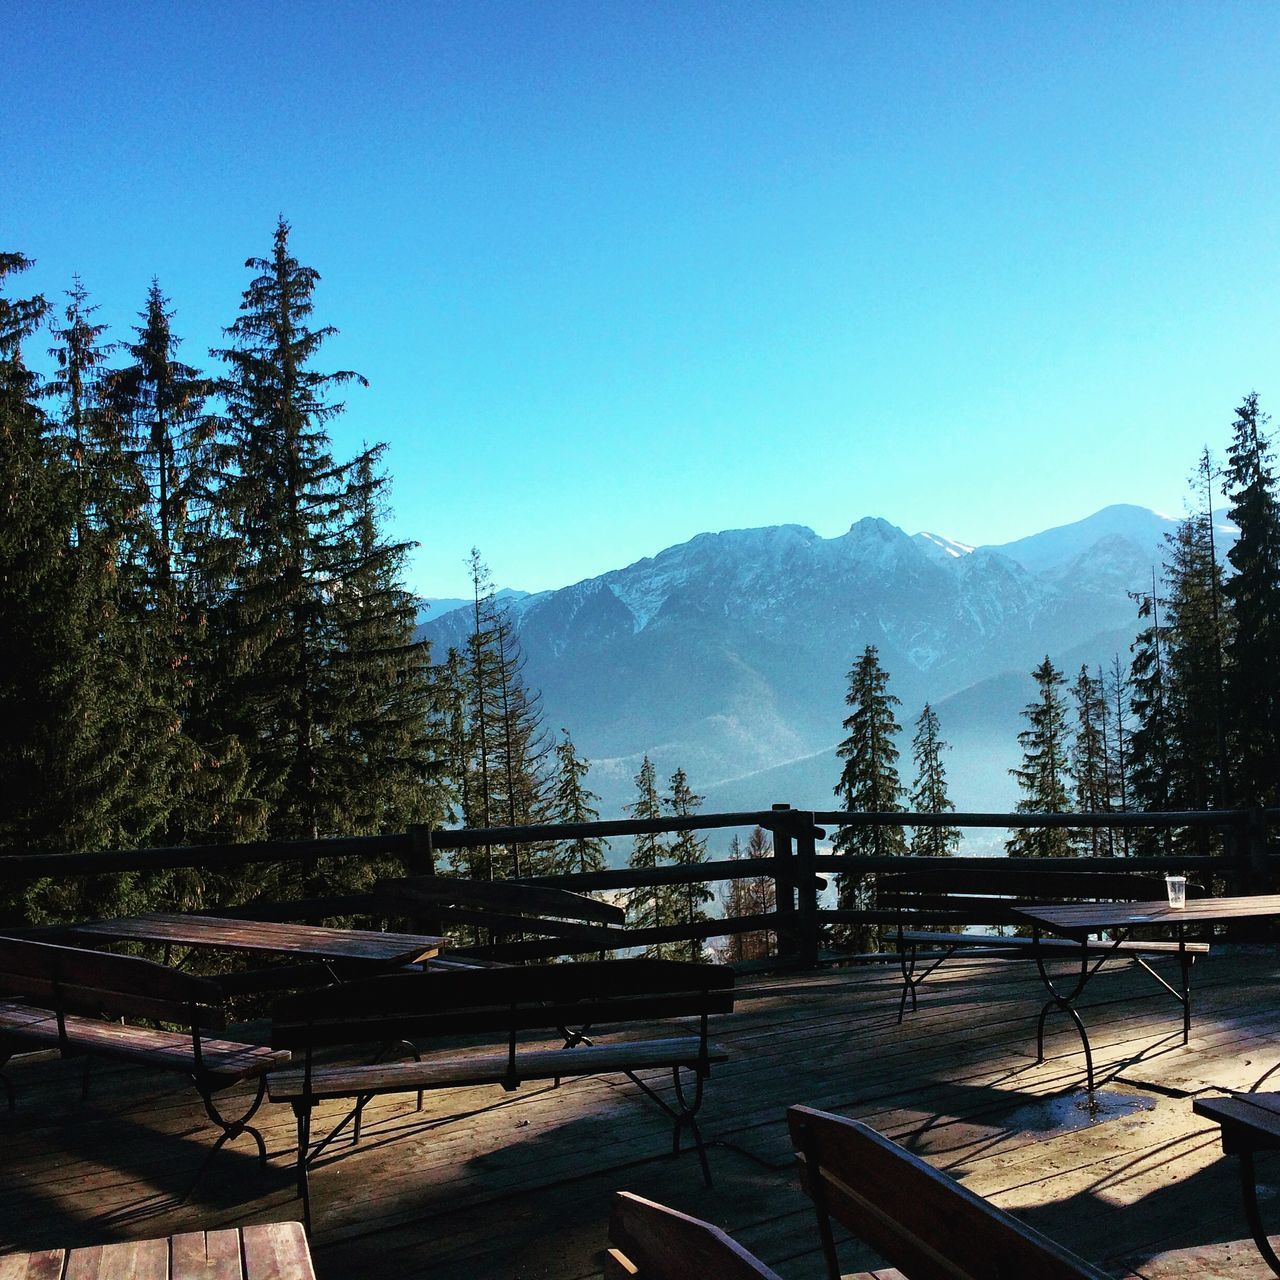 Empty Wooden Benches By Trees And Mountains Against Sky